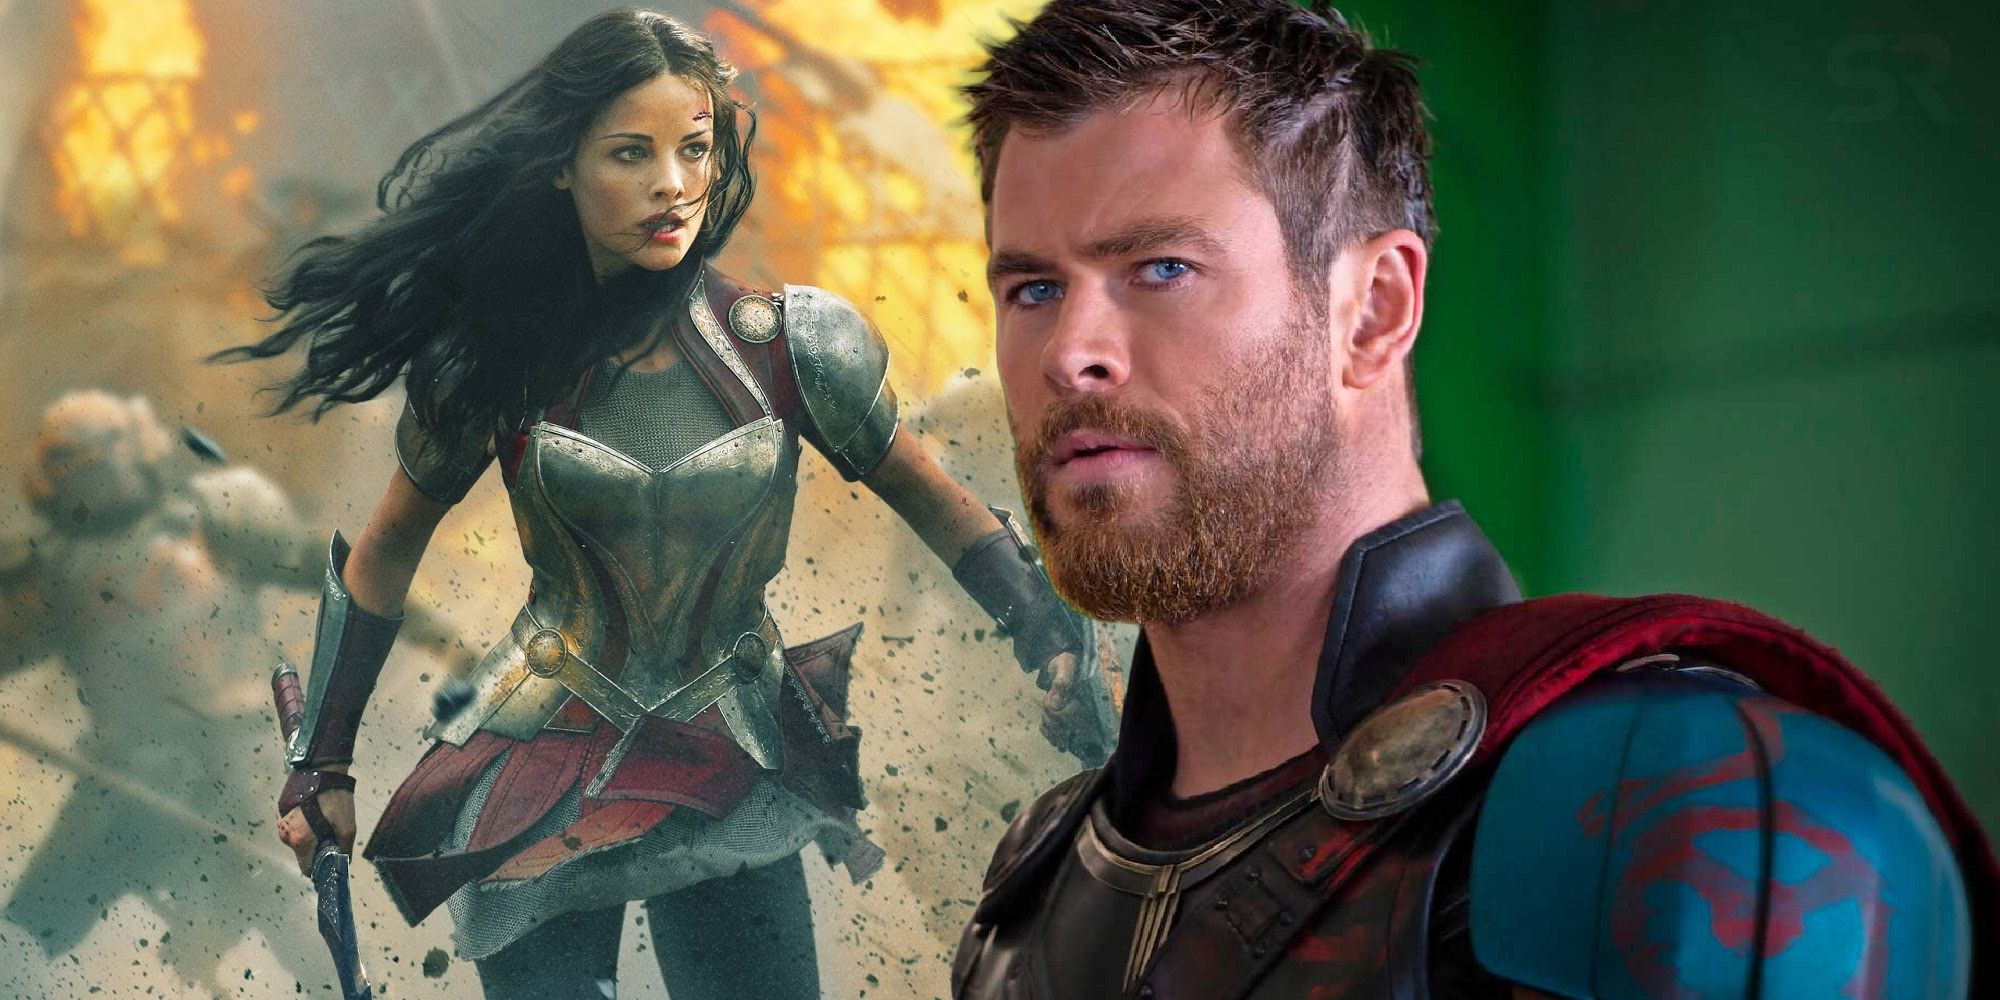 Thor 4 Brings Back Jaimie Alexander As Lady Sif, May Also Appear In Loki